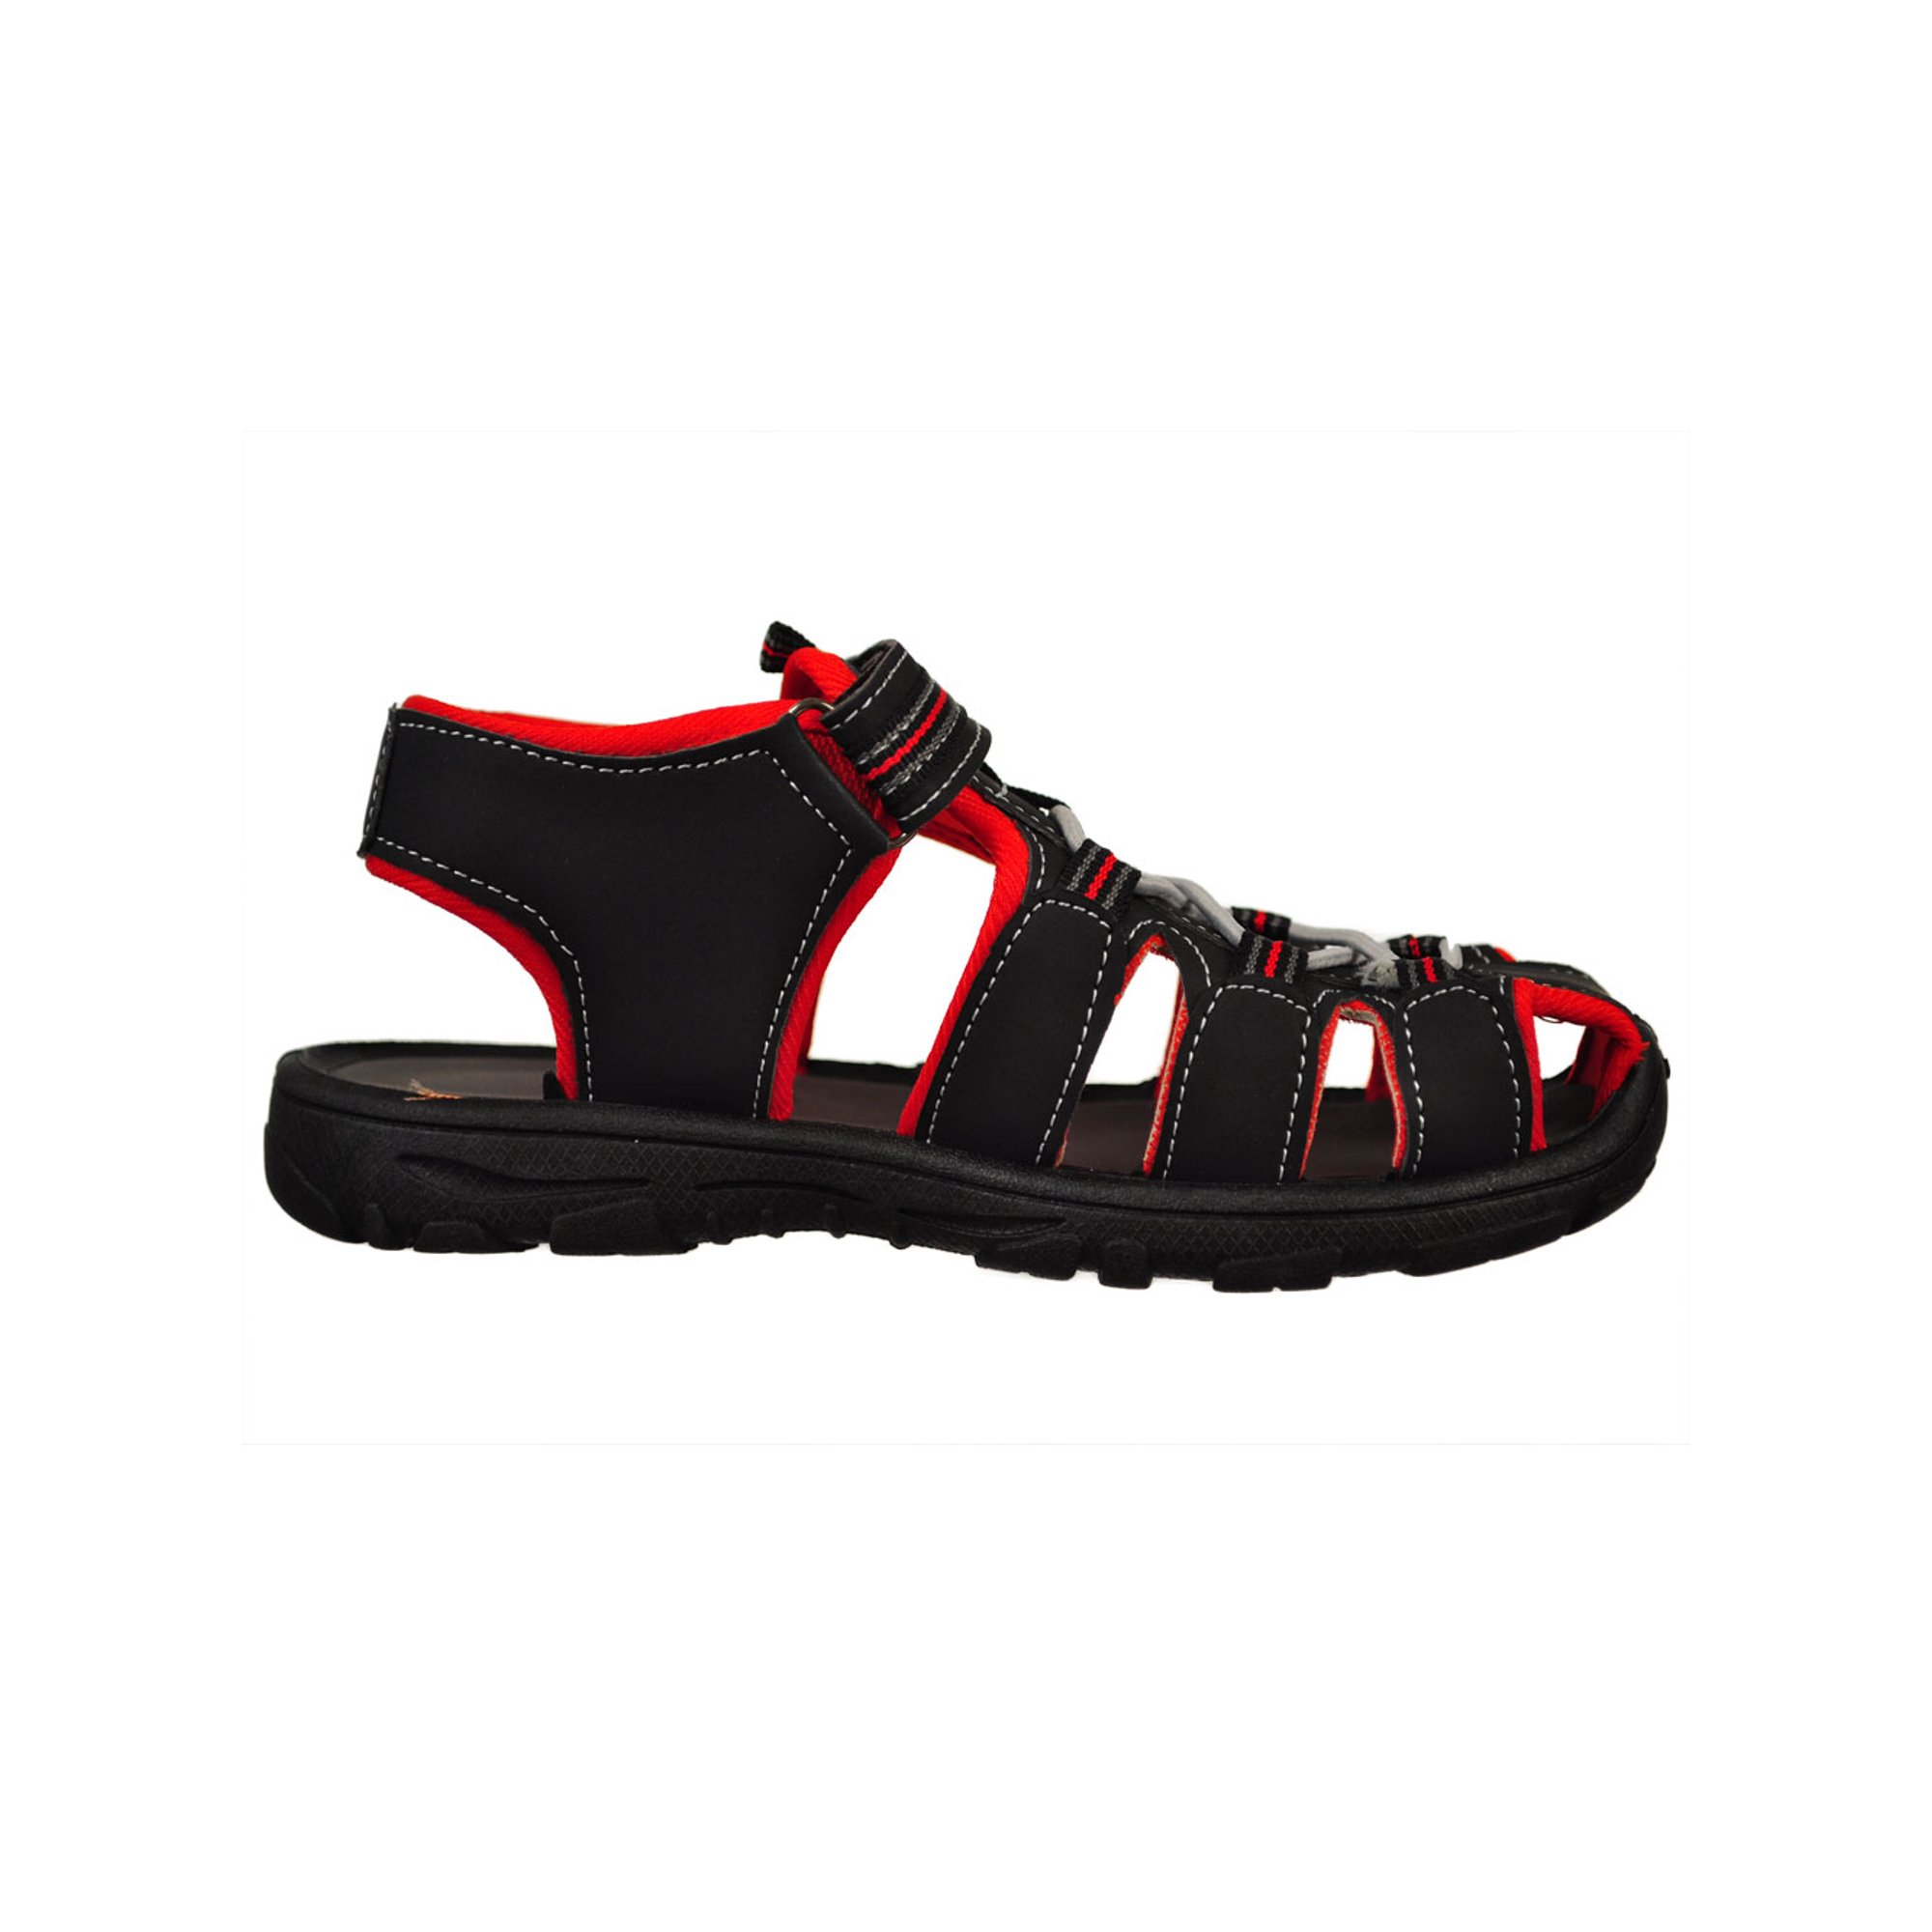 Rugged Bear Boys Sports Sandals Sizes